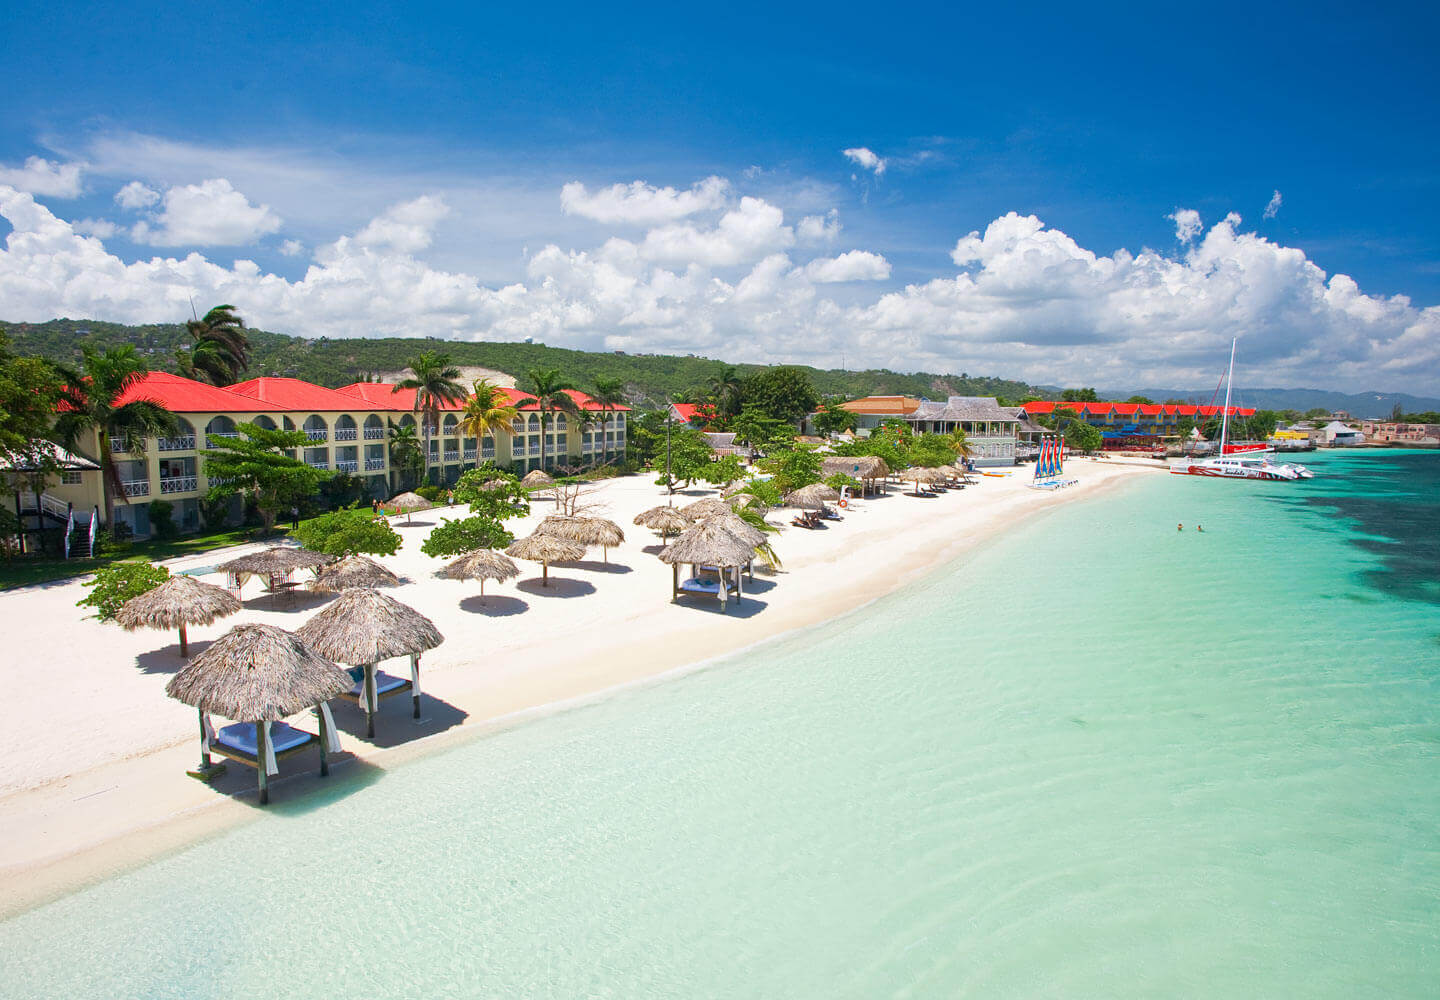 Sandals Montego Bay - Jamaica Vacations